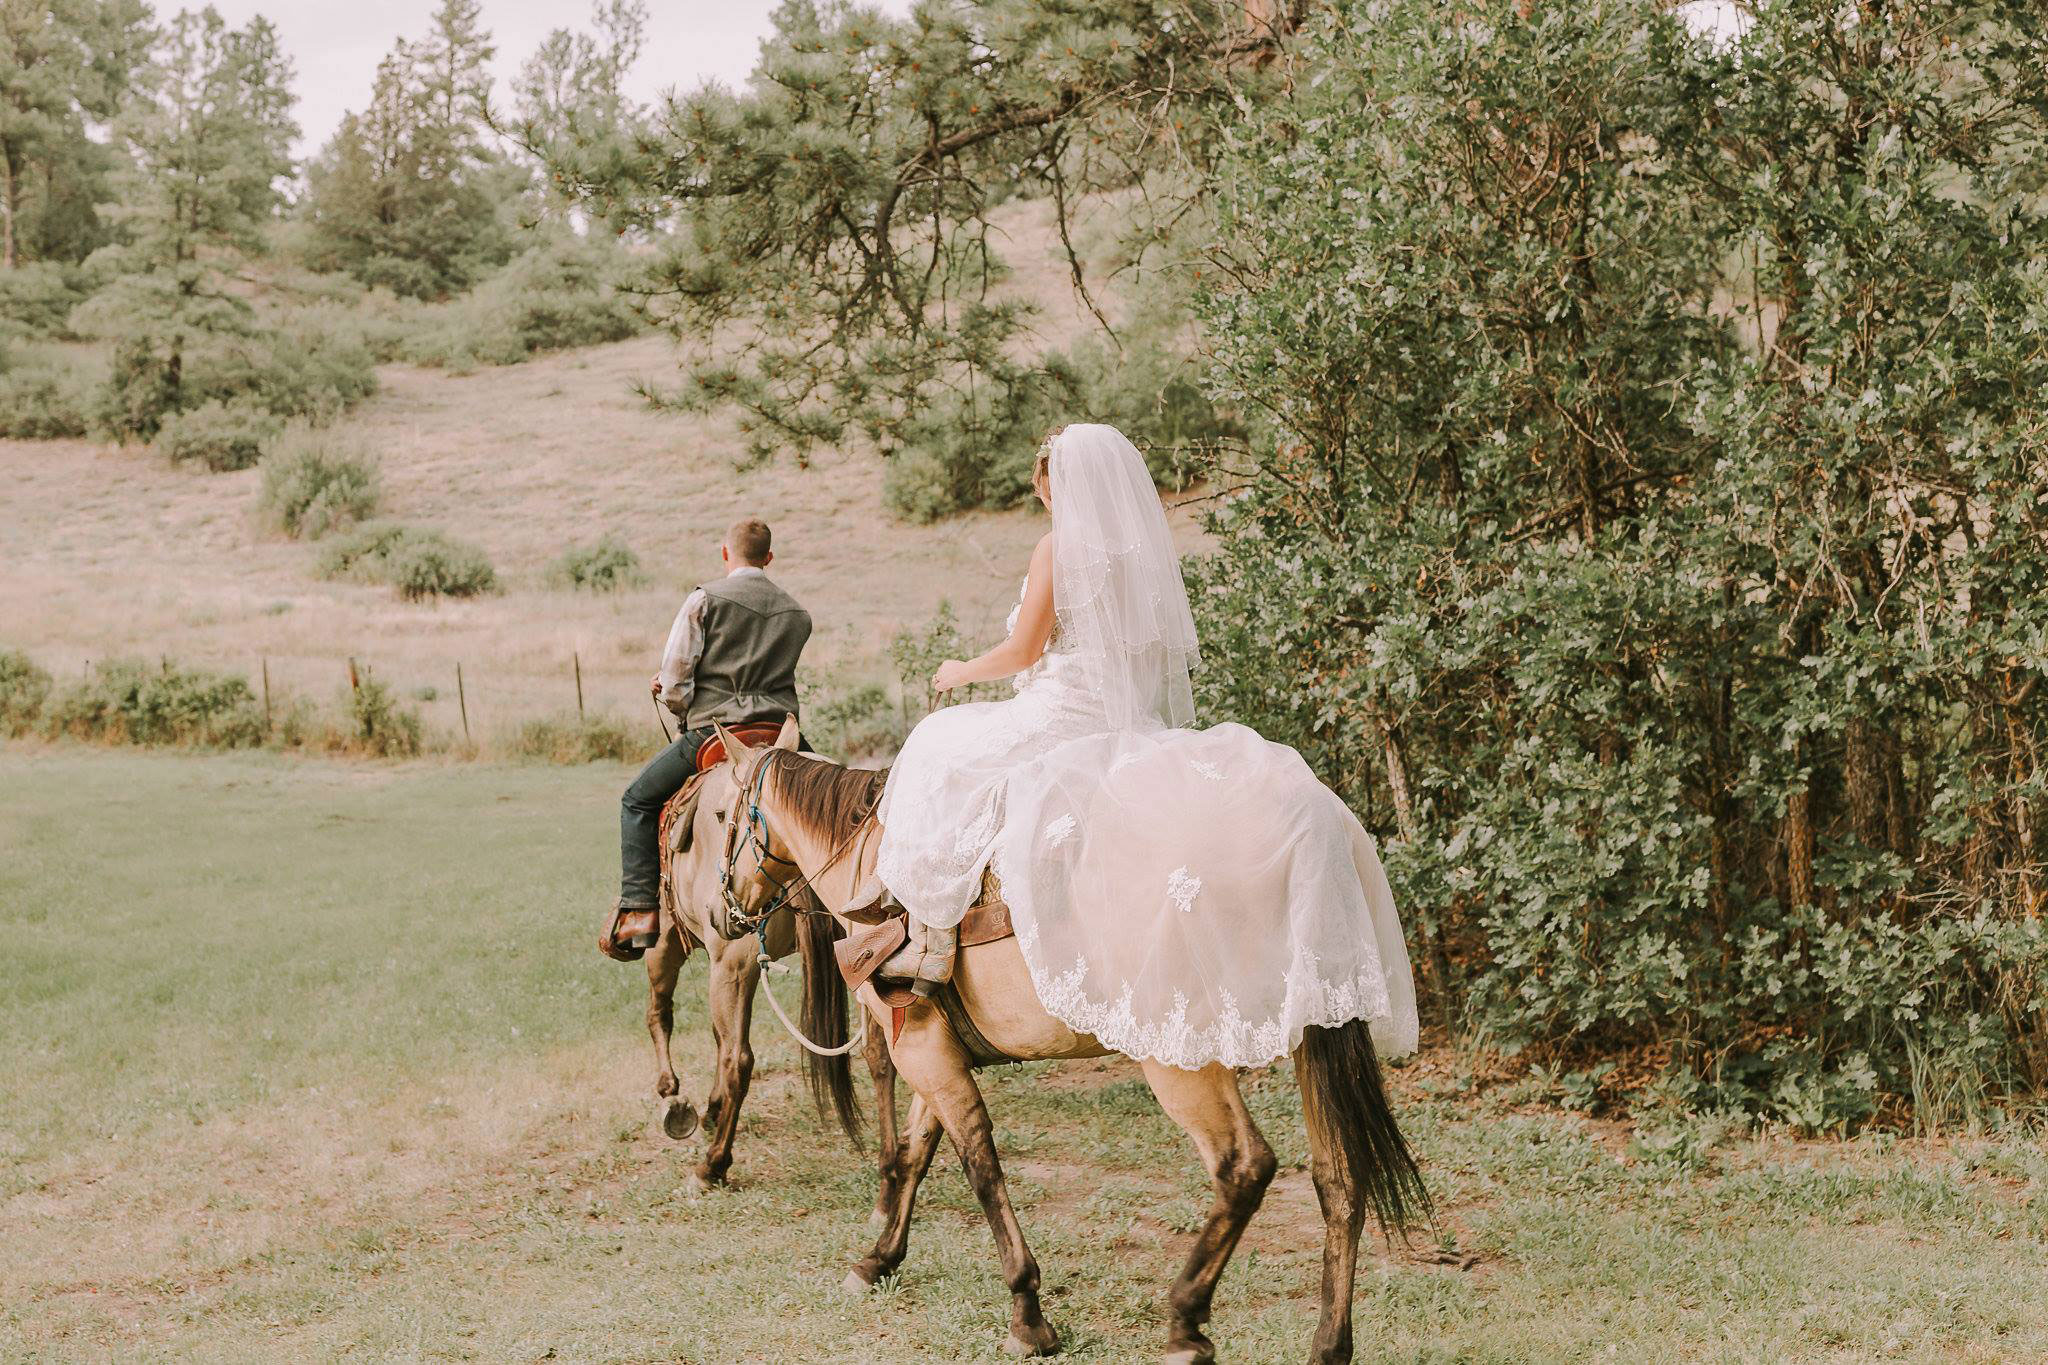 Bride & Groom on horseback after the ceremony at Paradise Ranch in Pagosa Springs, Colorado